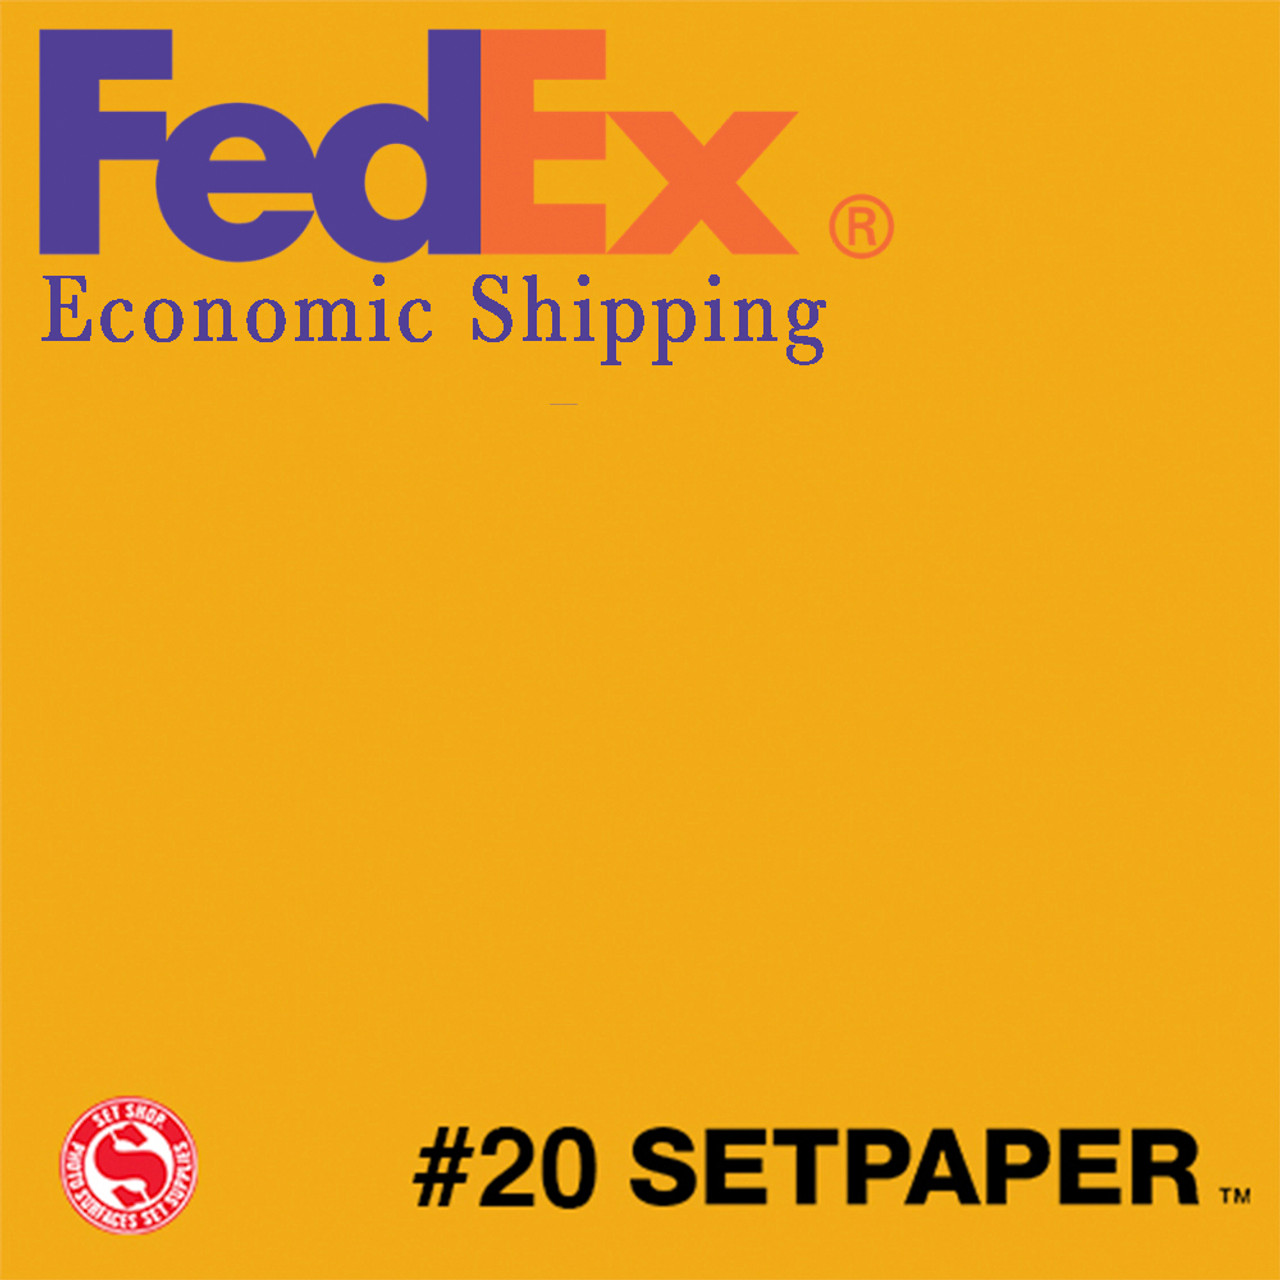 "(ECONOMIC SHIPPING) SETPAPER - FORSYTHIA 48"" x 36' (1.3 x 11m)"